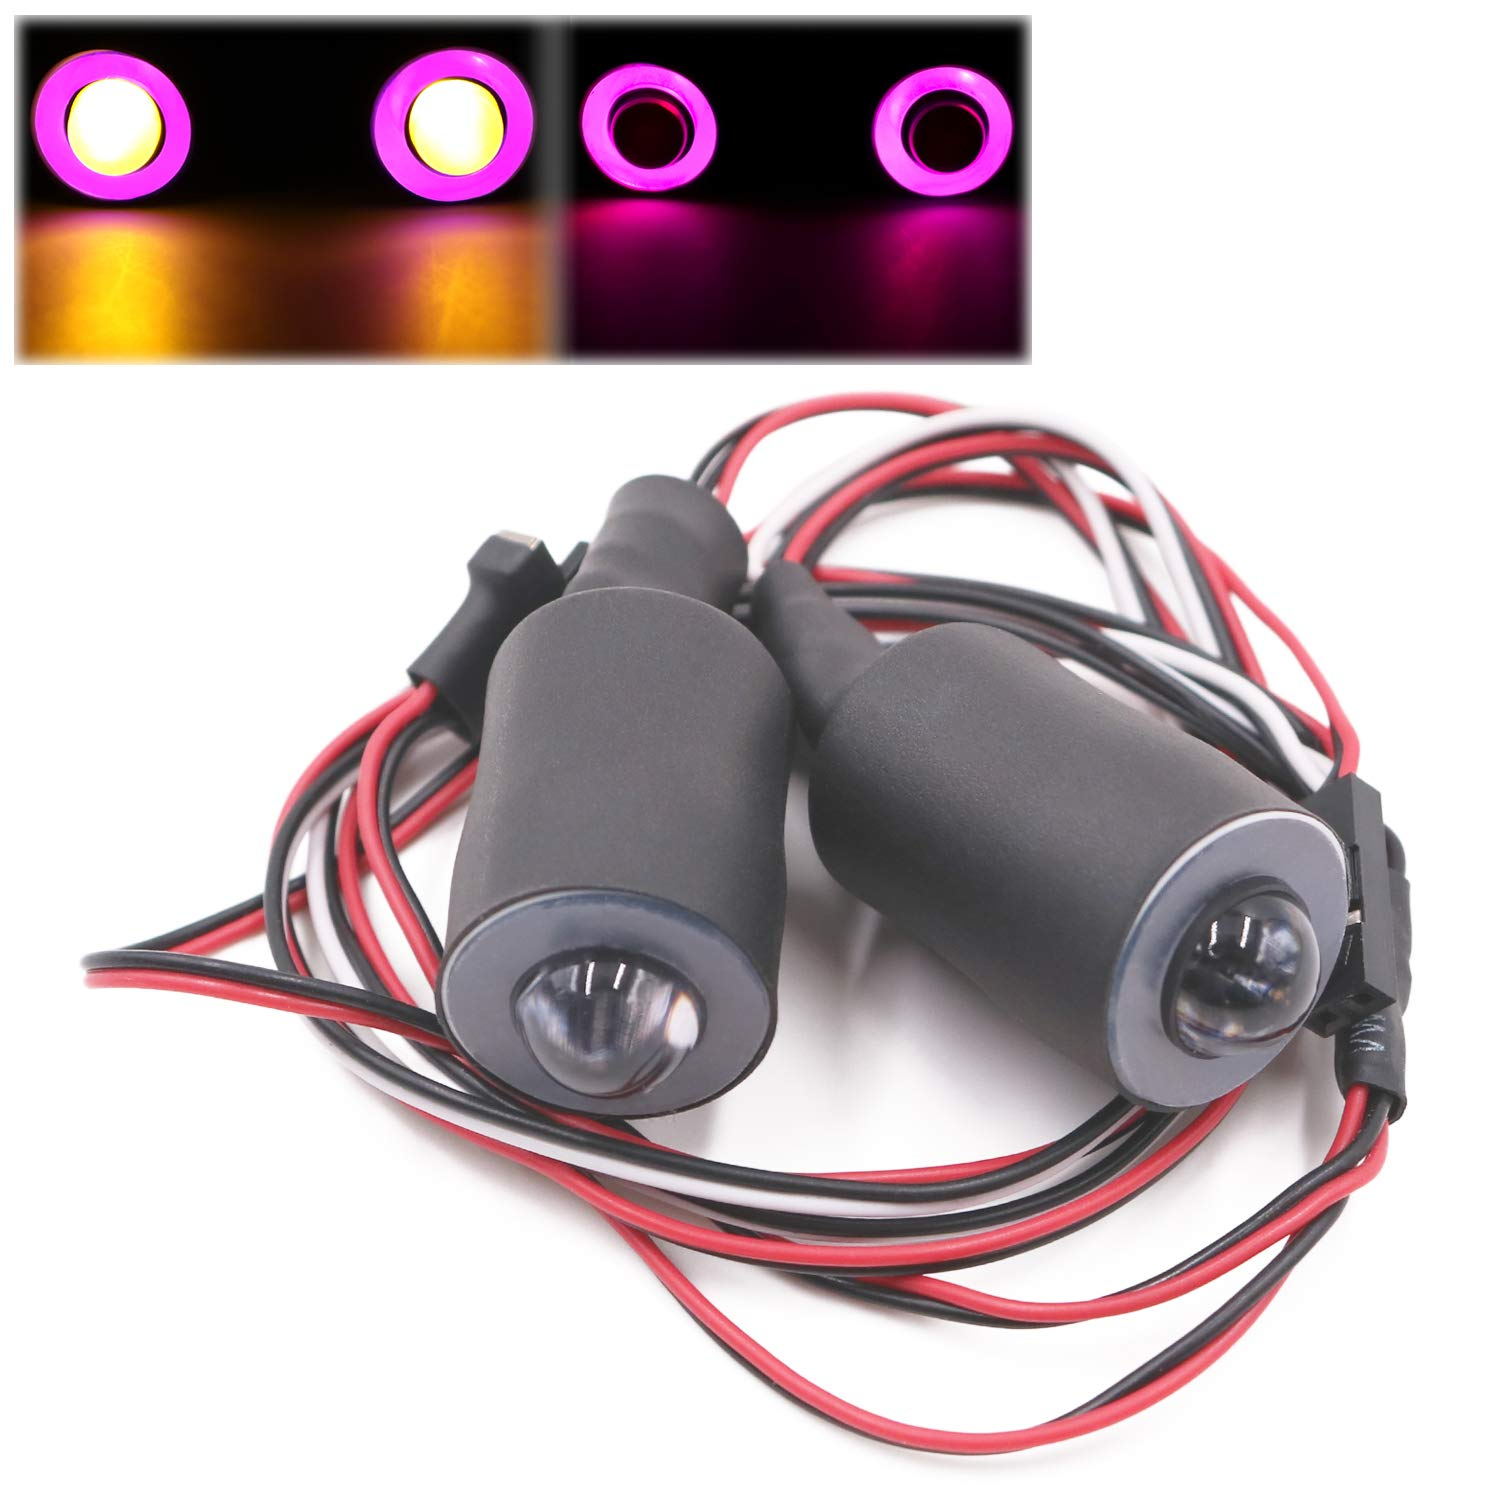 Kalevel RC LED Lights Headlight and Taillights Model Car Prewired LED Lights 2 LED Halo RC Truck Light Kit Accessories 1//10 Lights 10mm 13mm 17mm 22mm for RC Model Crawler Cars Trucks Red White